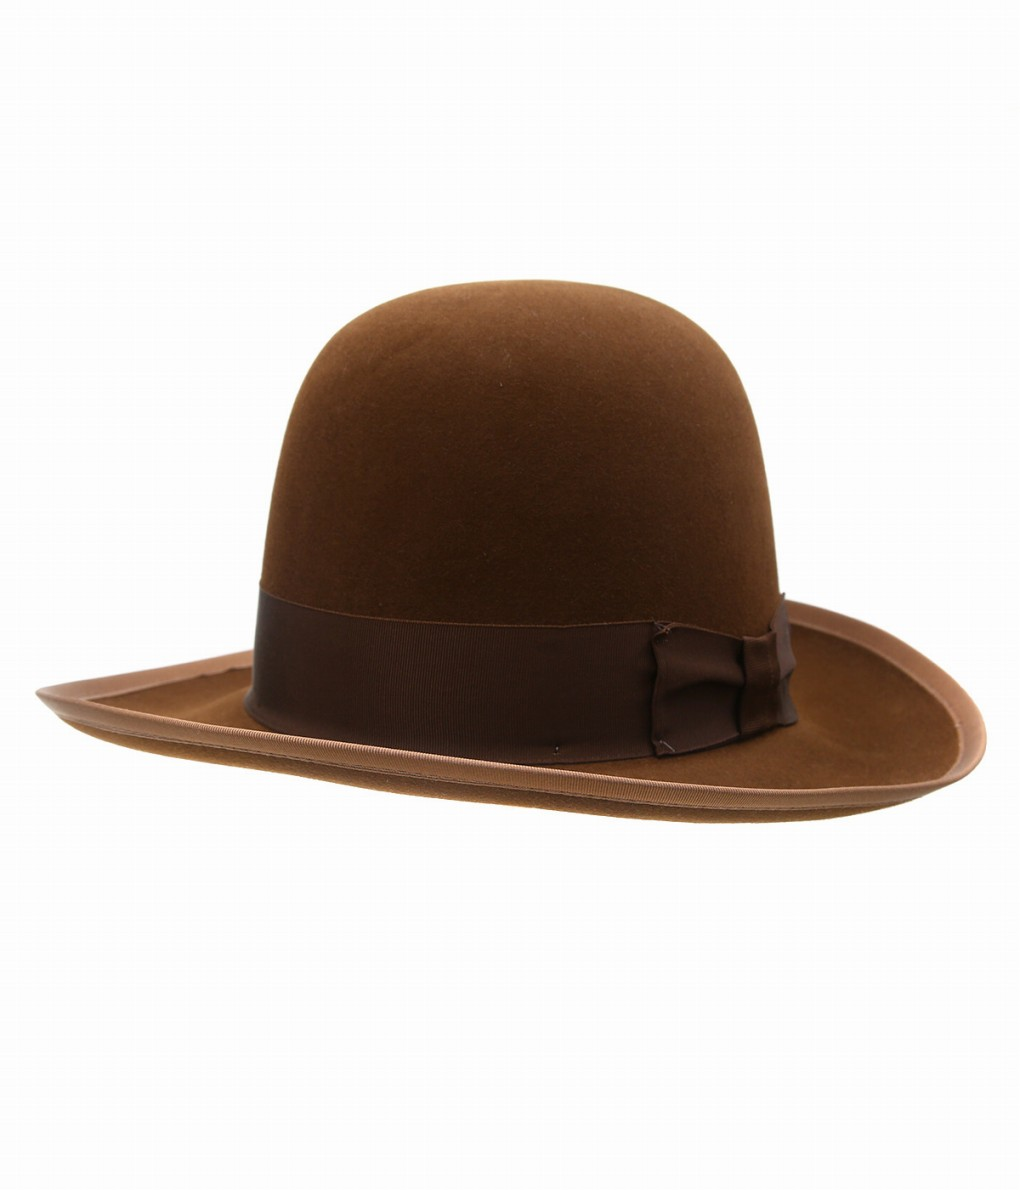 STETSON / ステットソン : WHIPPET Repro / 全2色 : ウィペット レプロ HAT 帽子 ハット メンズ : ST203-19A00 【STD】